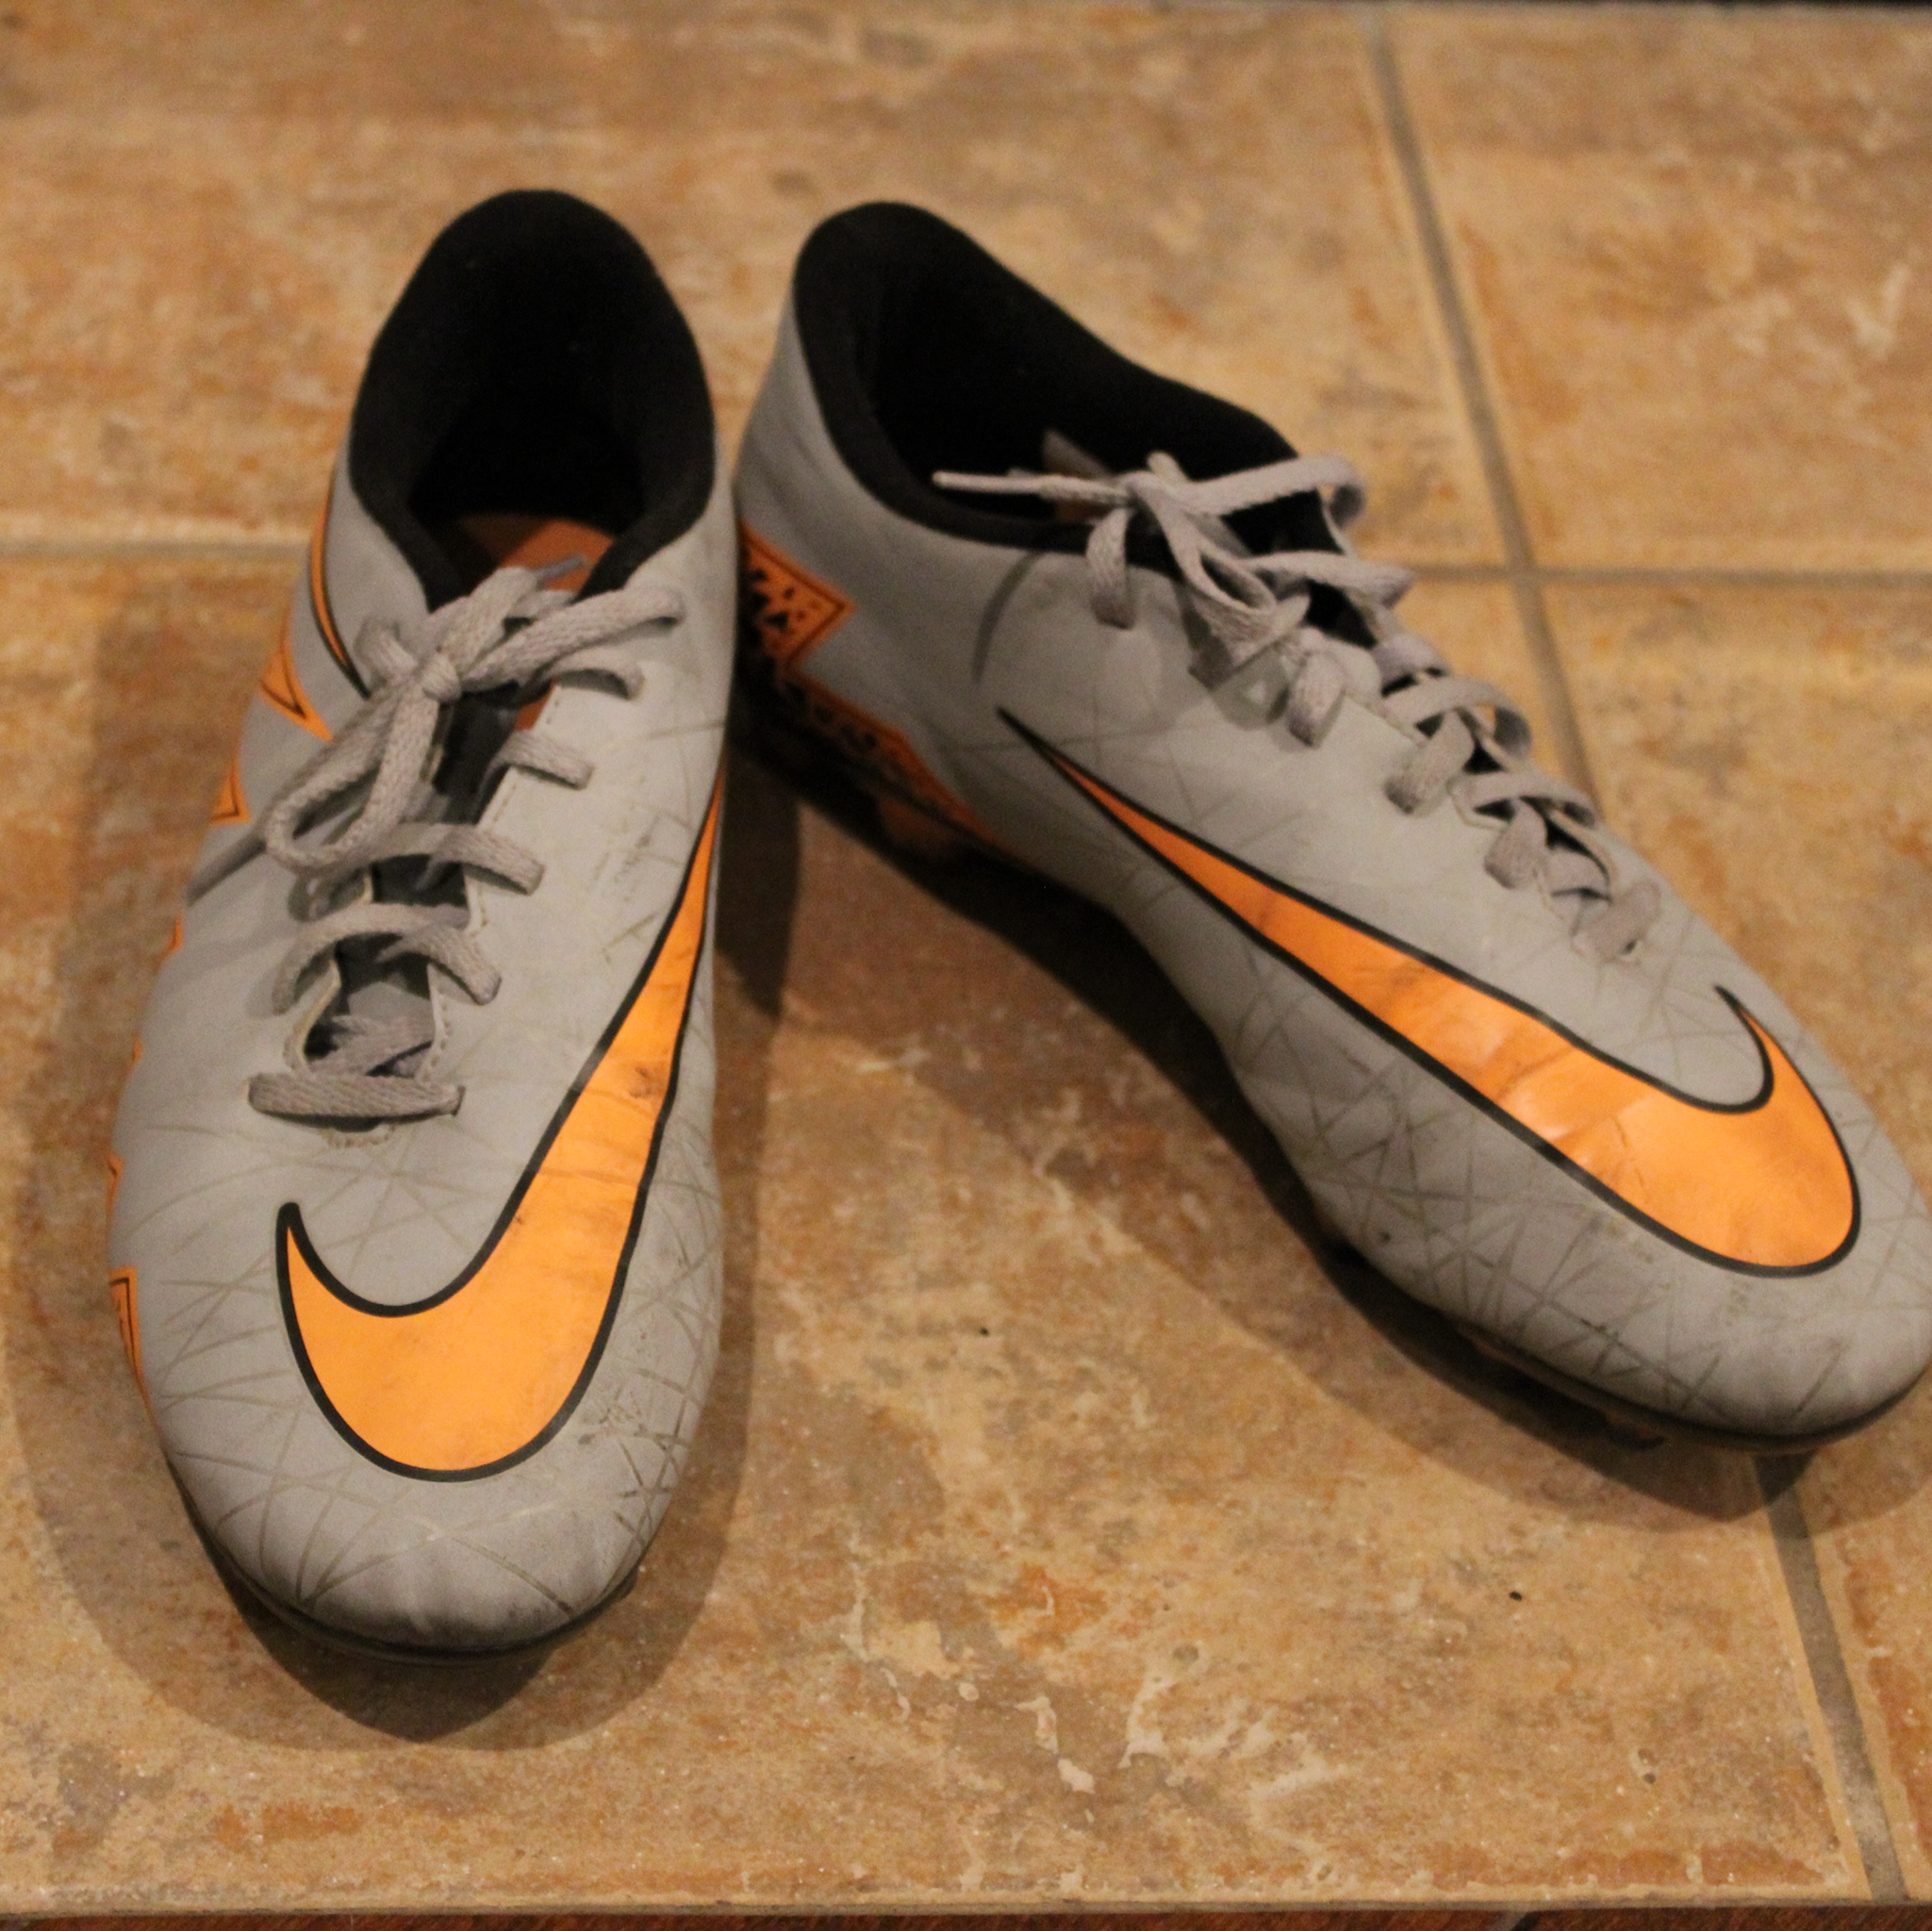 Product Image 1 - Nike boys soccer cleats. Size: 8.5(US)